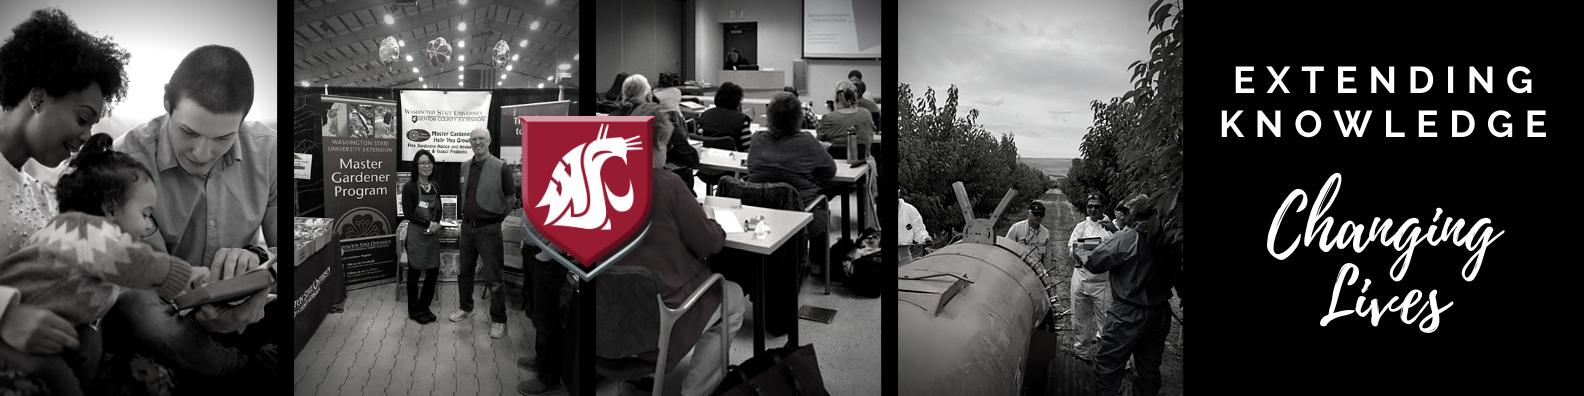 Extending Knowledge, Changing Lives. WSU logo over black and white pictures of people reading, Master Gardener booth, classroom learning and field learning.